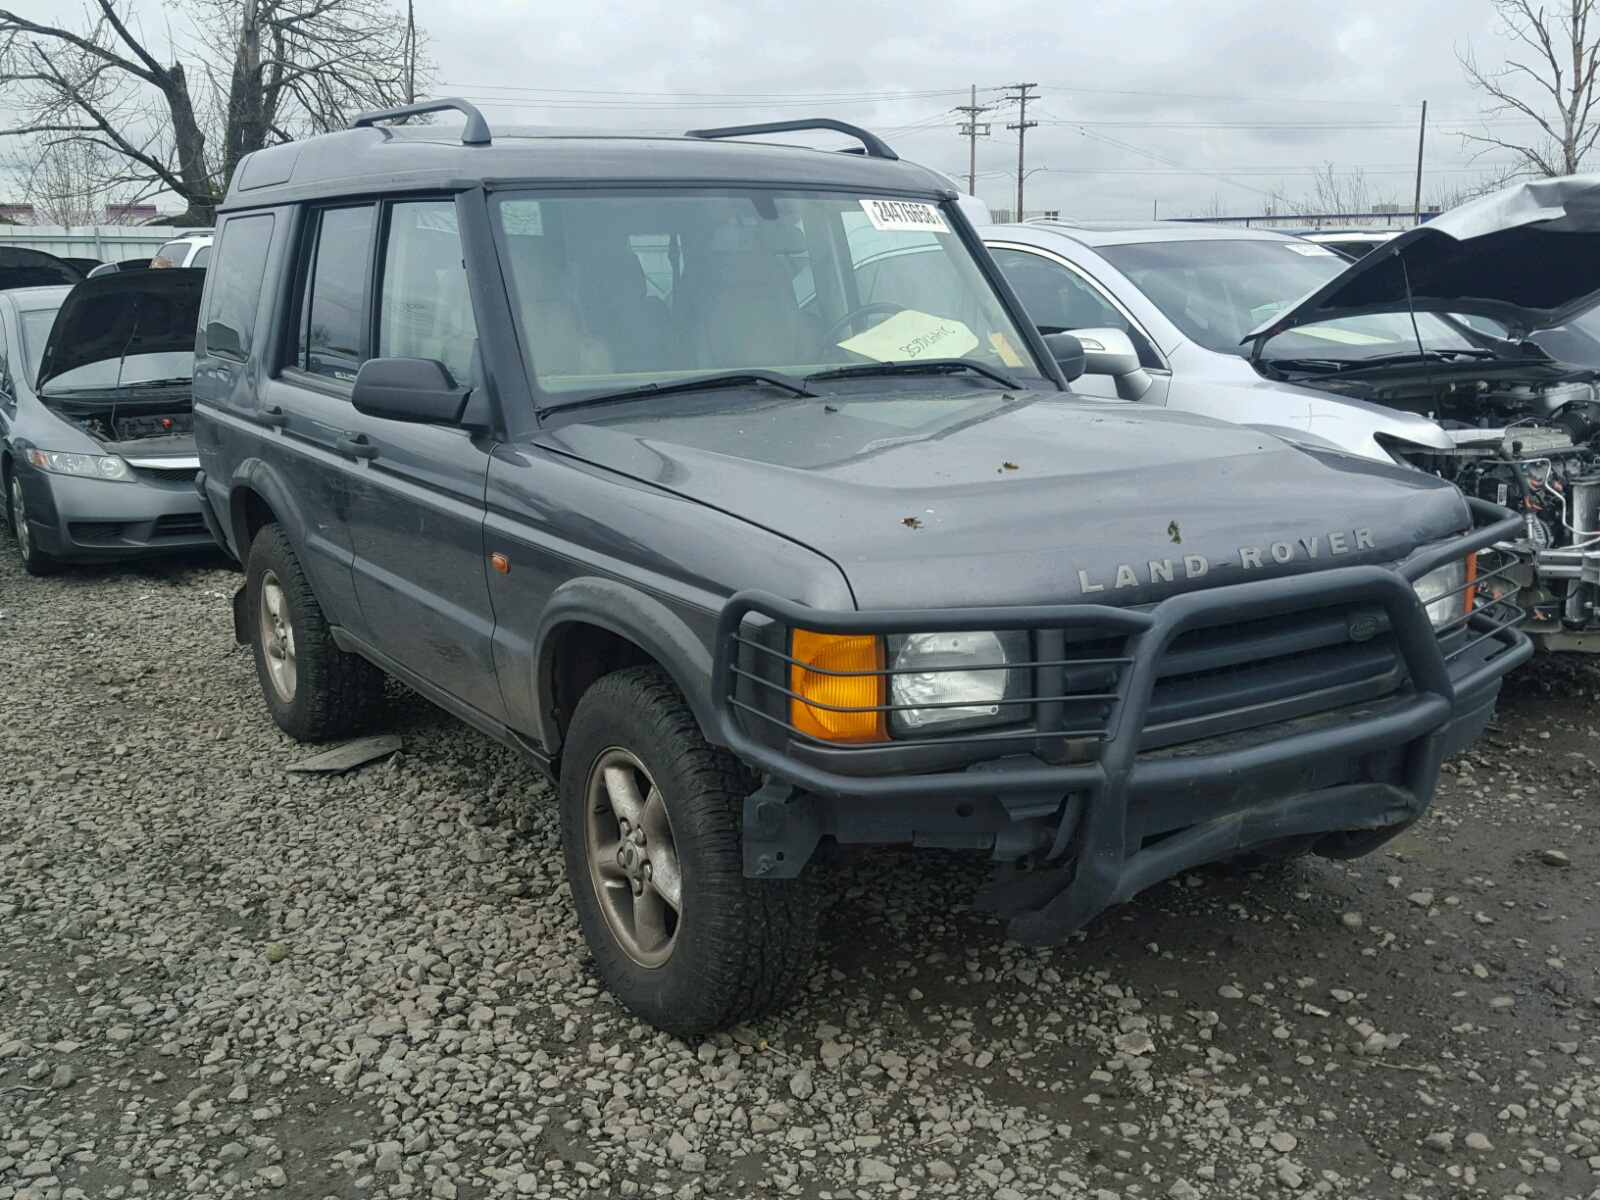 landrover vereeniging discovery rover sale hse gauteng for kopanong land junk cars mail